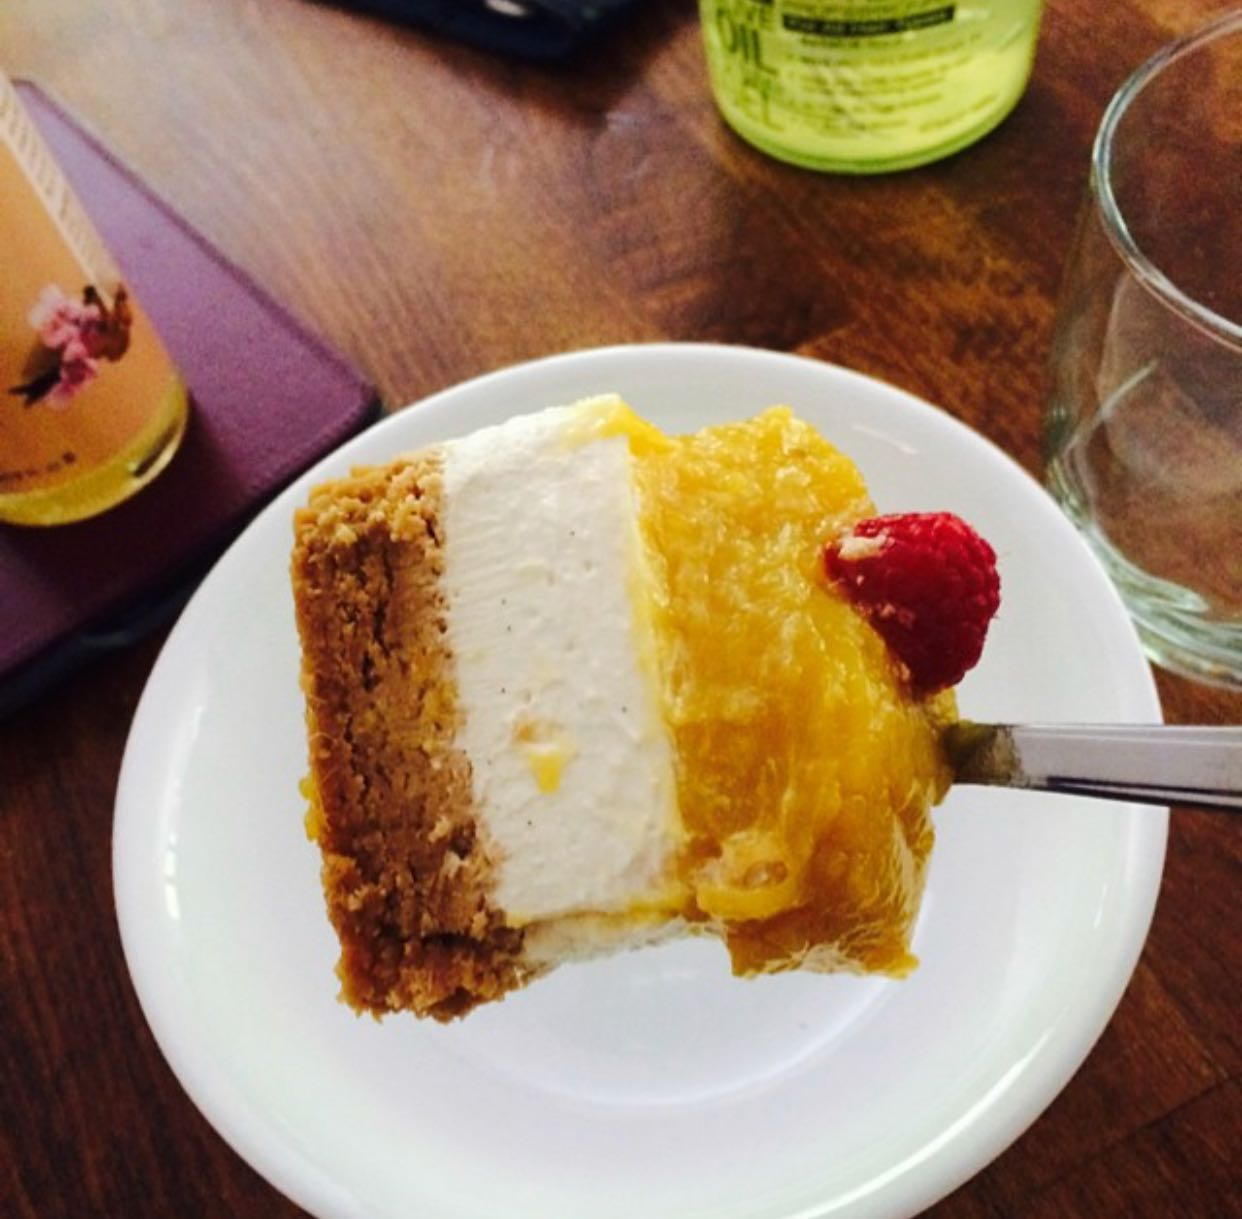 Mango Cheesecake and Picture by Trish Ladipo